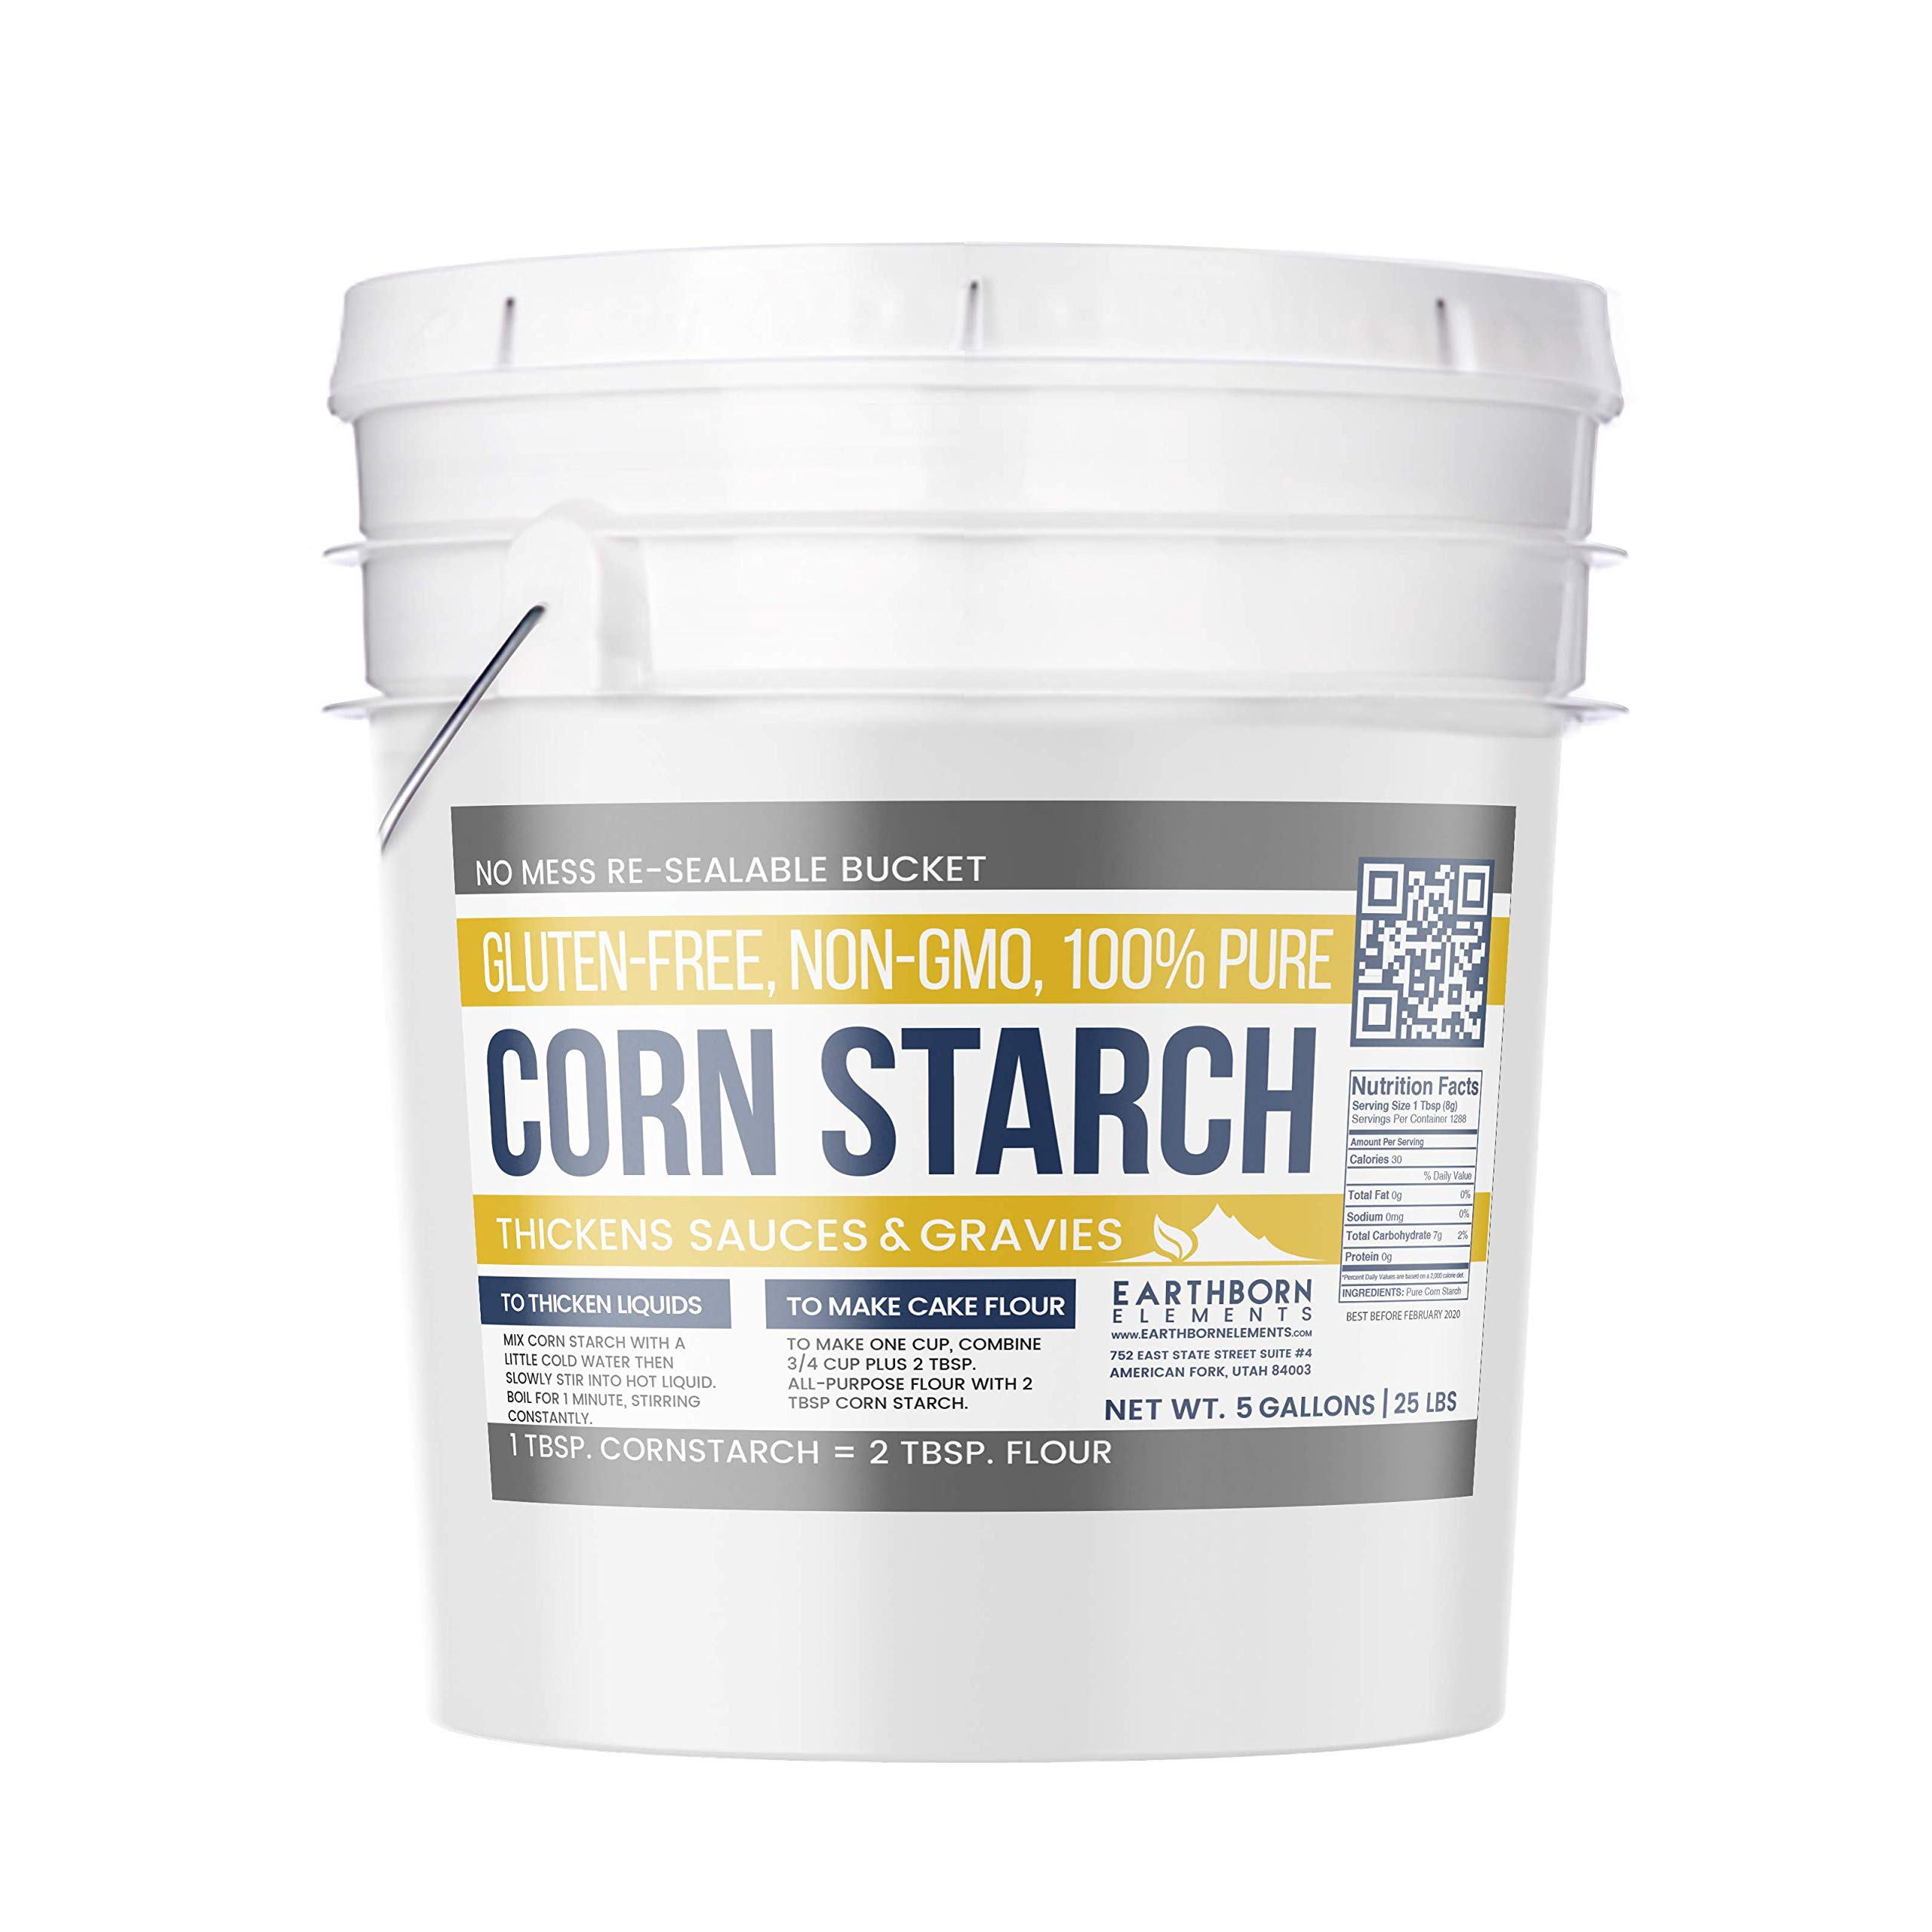 Corn Starch (5 Gallon (25 lb.)) by Earthborn Elements, Resealable Bucket, Thickener For Sauces, Soup, & Gravy, Highest Quality, All-Natural, Kosher, Food Grade & USP Grade, Vegan, Gluten-Free by Earthborn Elements (Image #1)